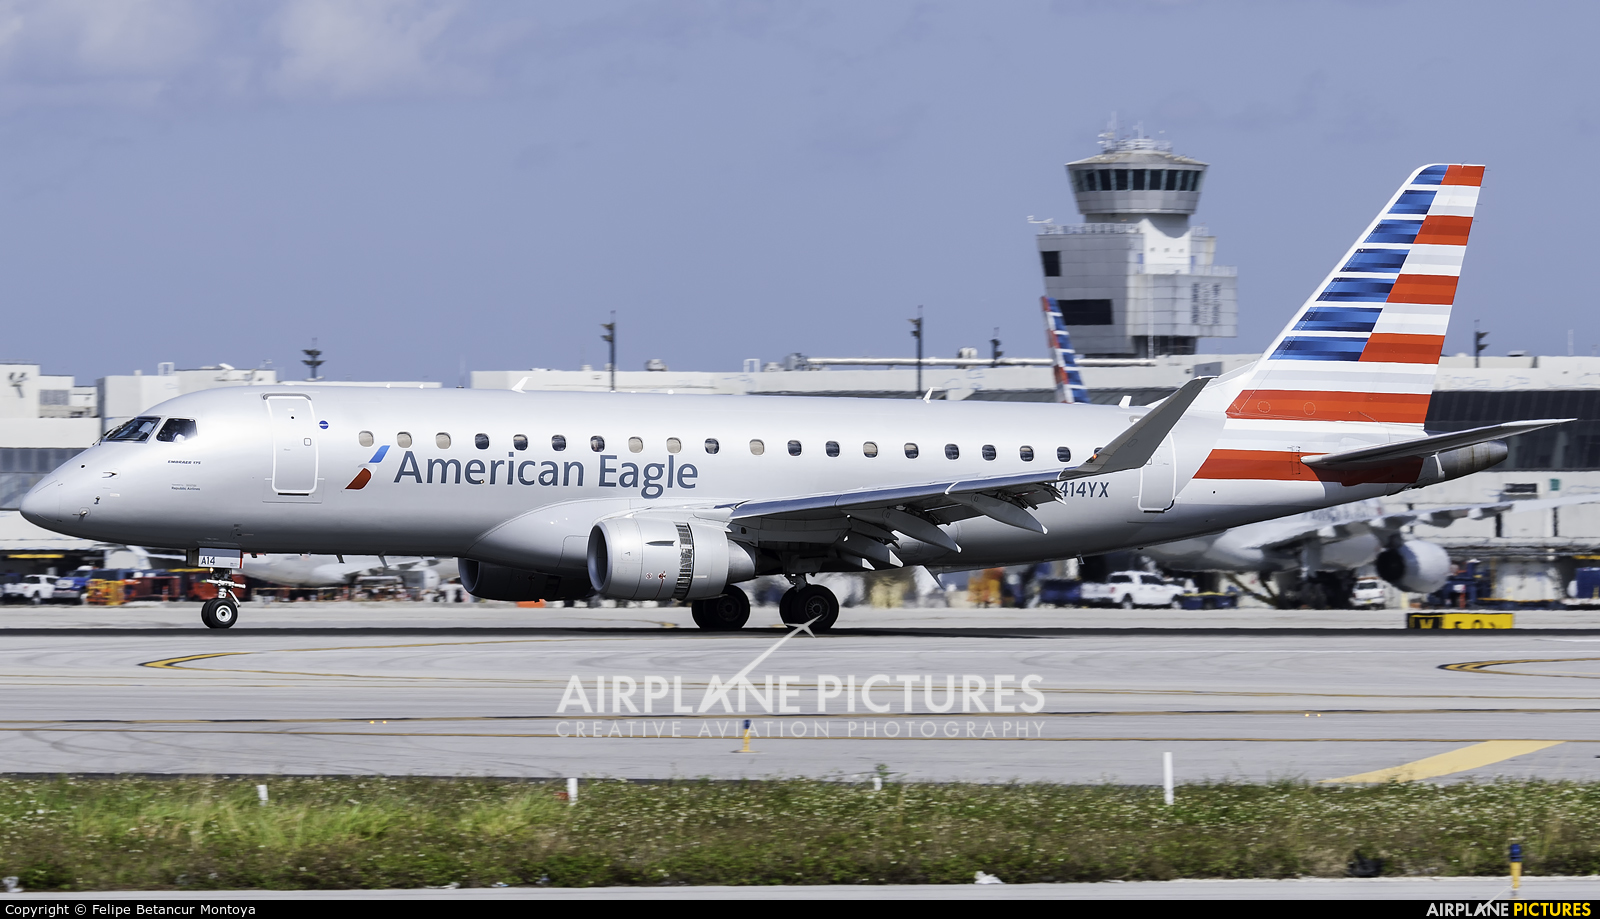 American Eagle N414YX aircraft at Miami Intl